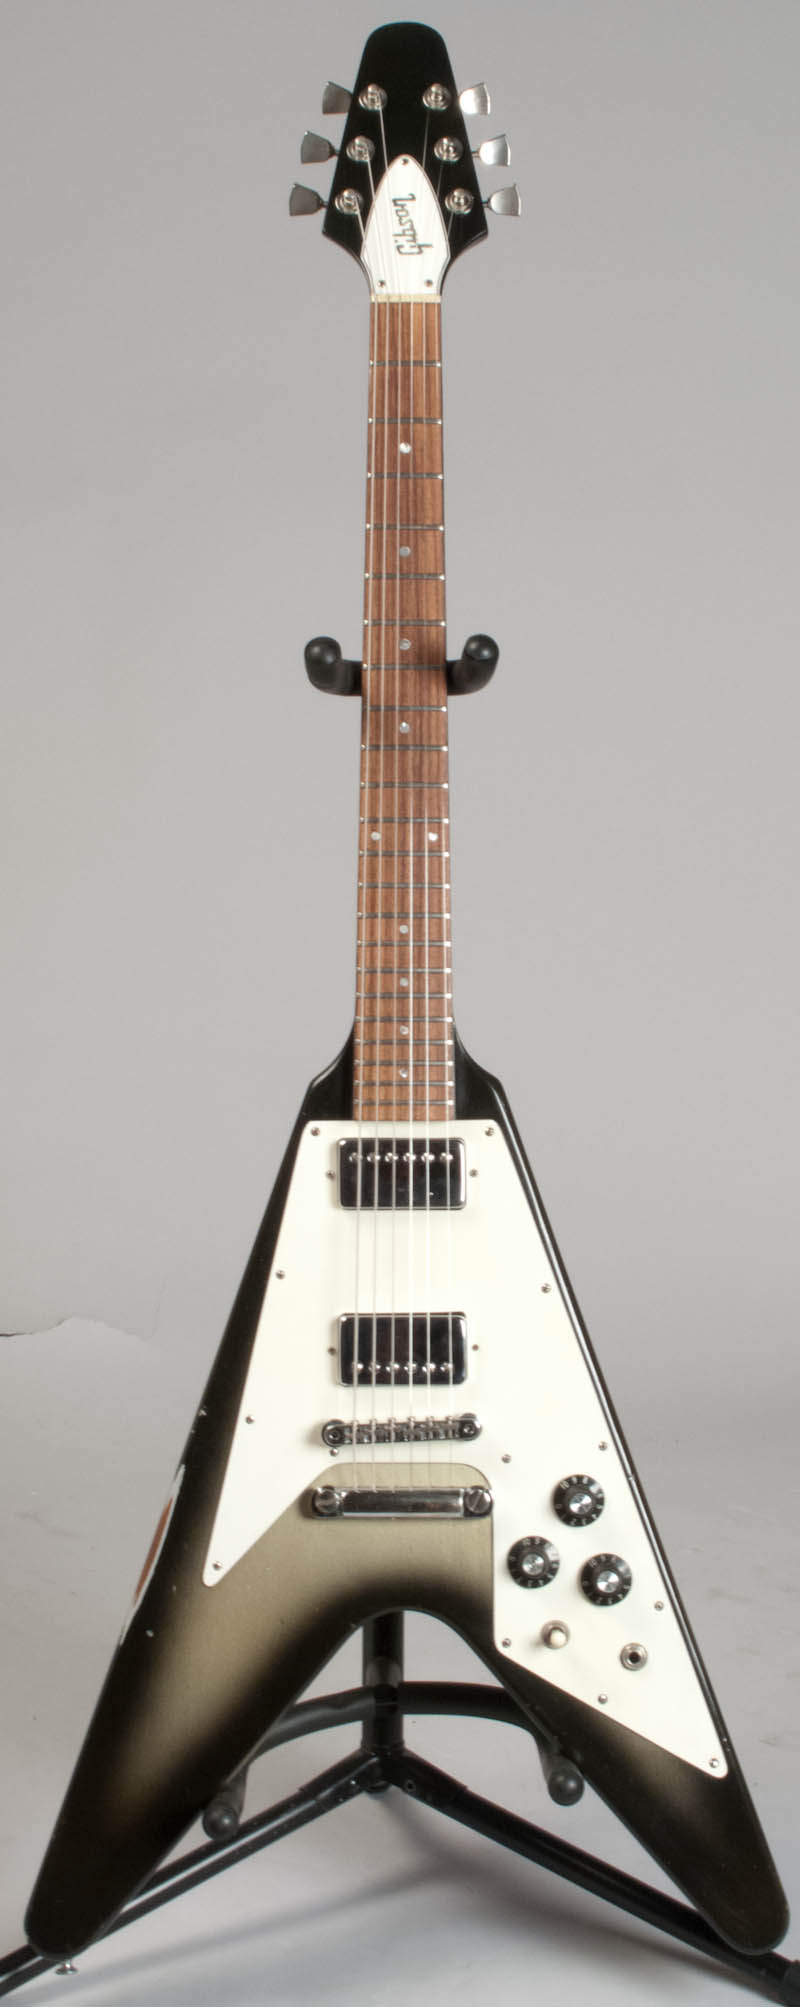 gibson flying v 1981 silverburst ref 00439 guitar for sale guitars west. Black Bedroom Furniture Sets. Home Design Ideas